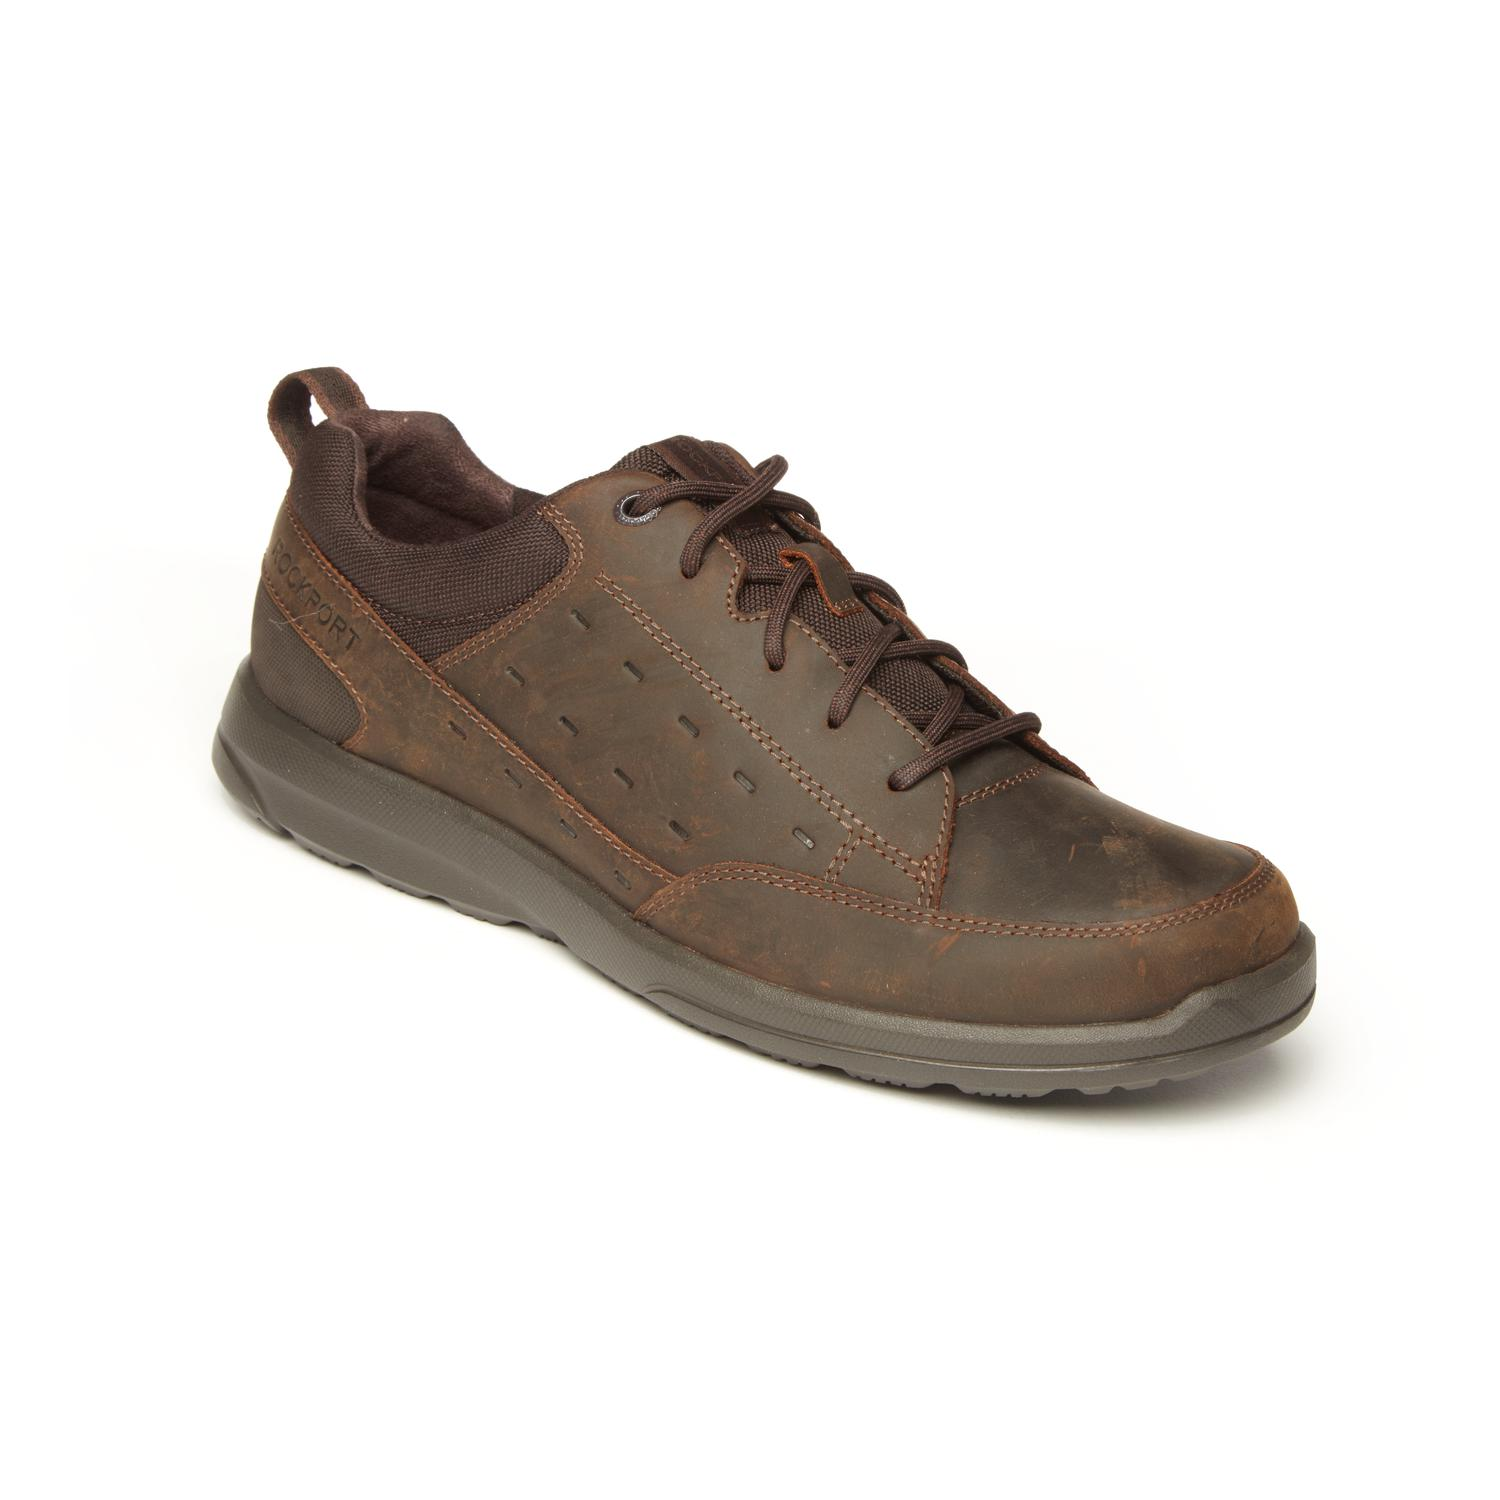 Lyst - Rockport Rydley Lace Up Sneaker in Brown for Men 6c51d0b8a8a